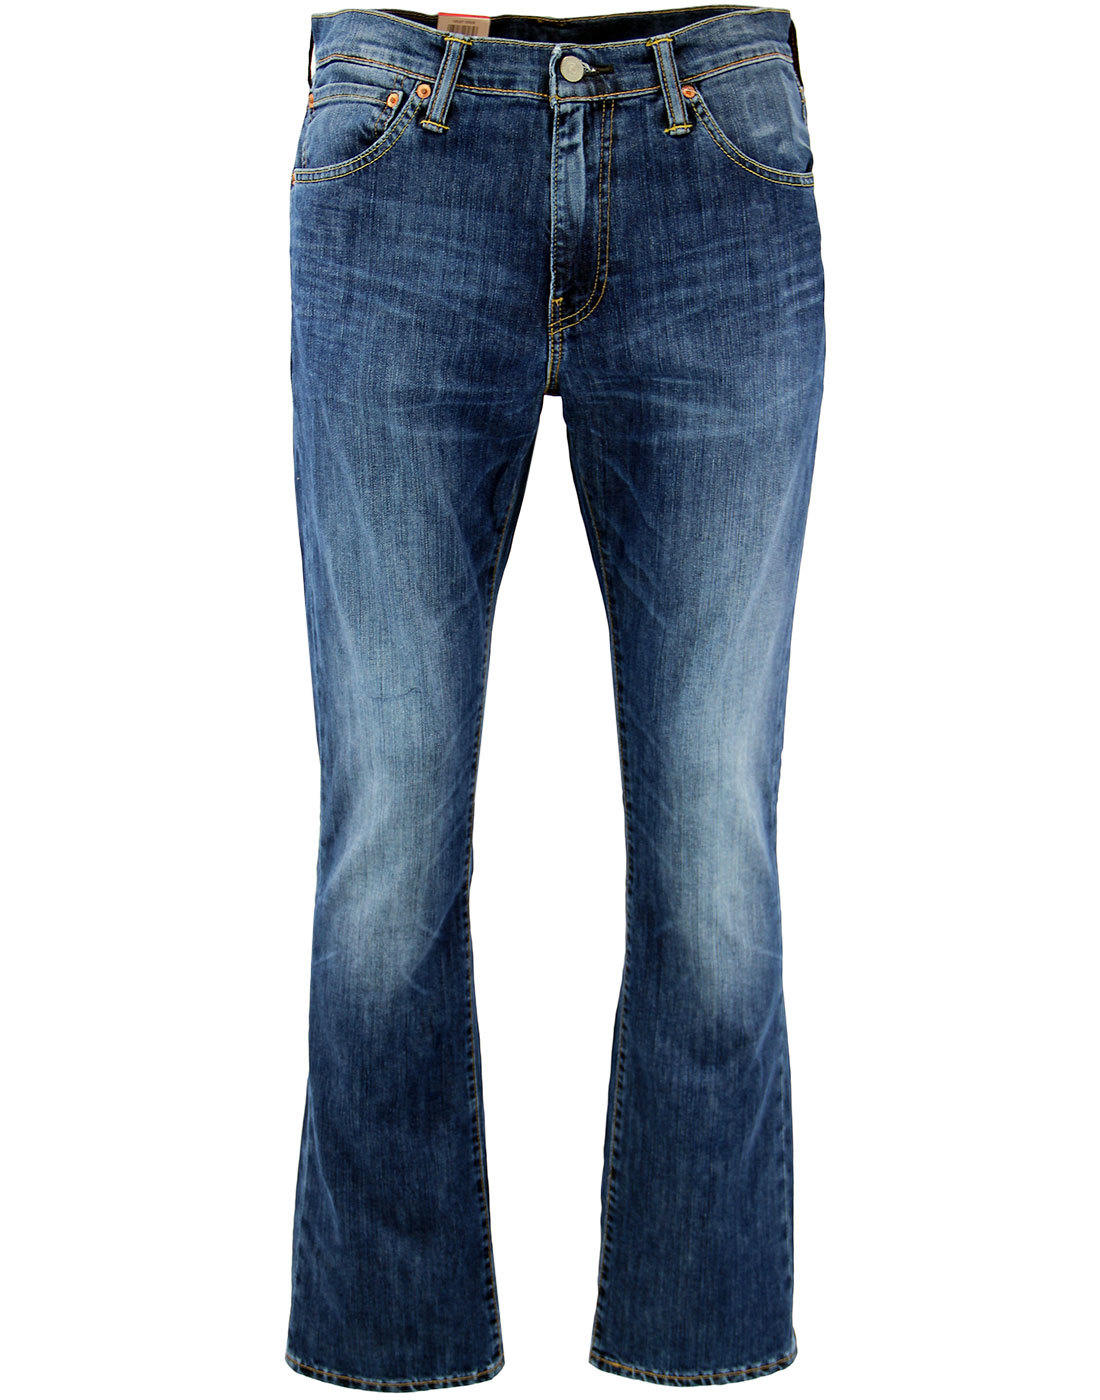 LEVI'S® 527 Mod Slim Bootcut Jeans Mostly Mid Blue